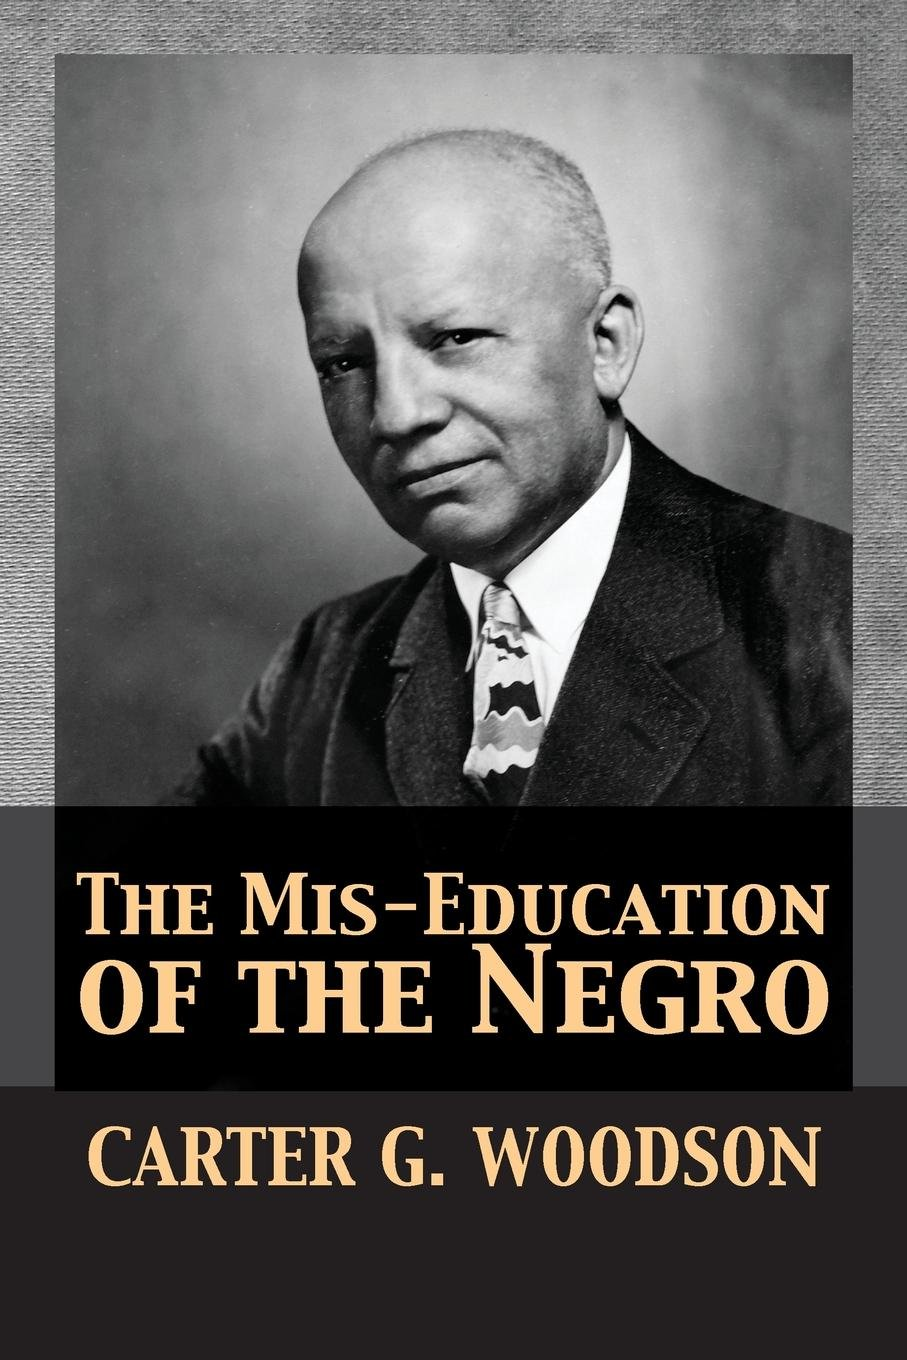 Pdf [free] download the mis-education of the negro carter godwin.